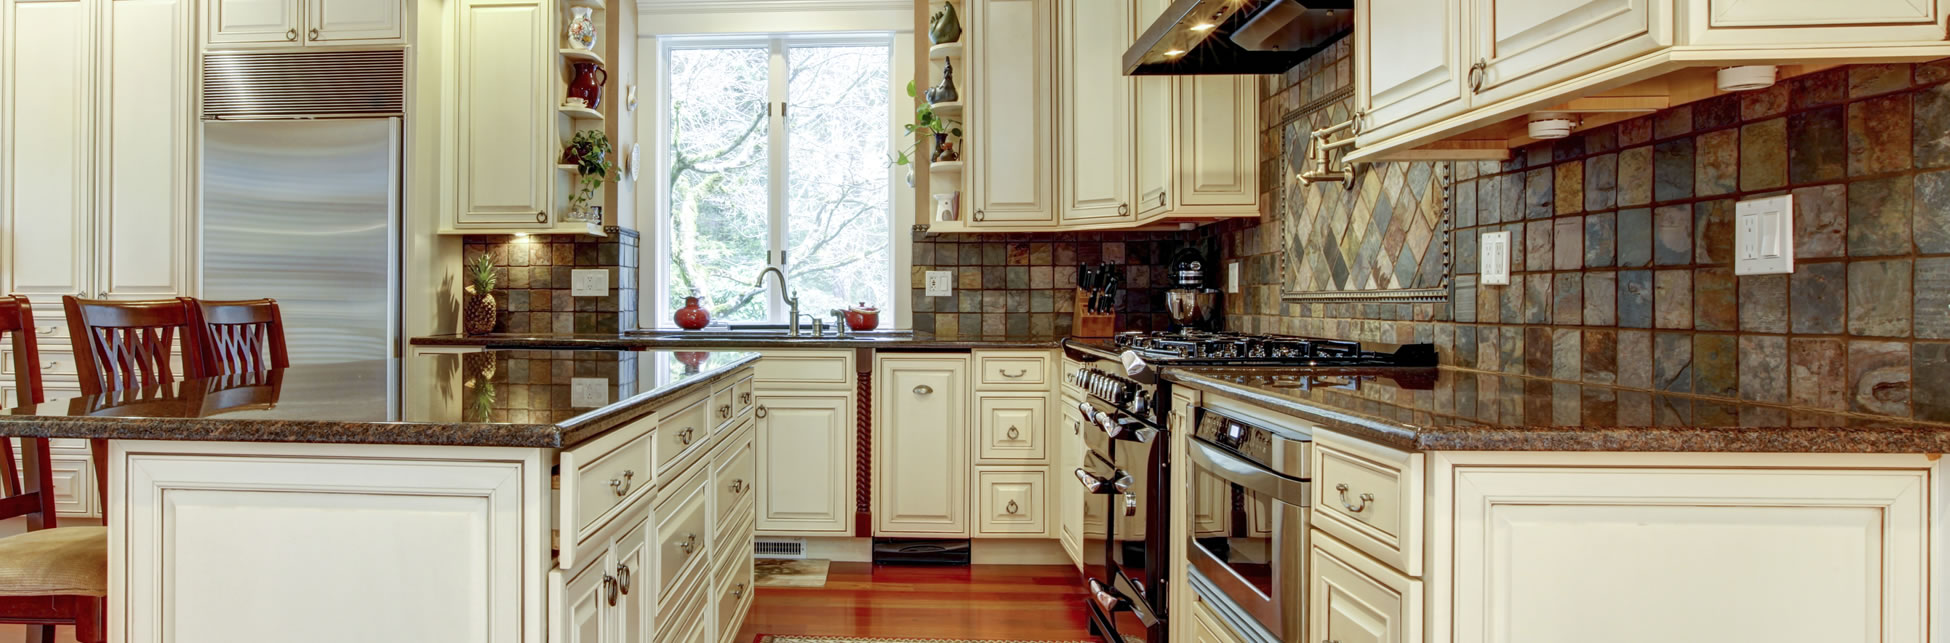 orange county kitchen remodeling remodel contractors